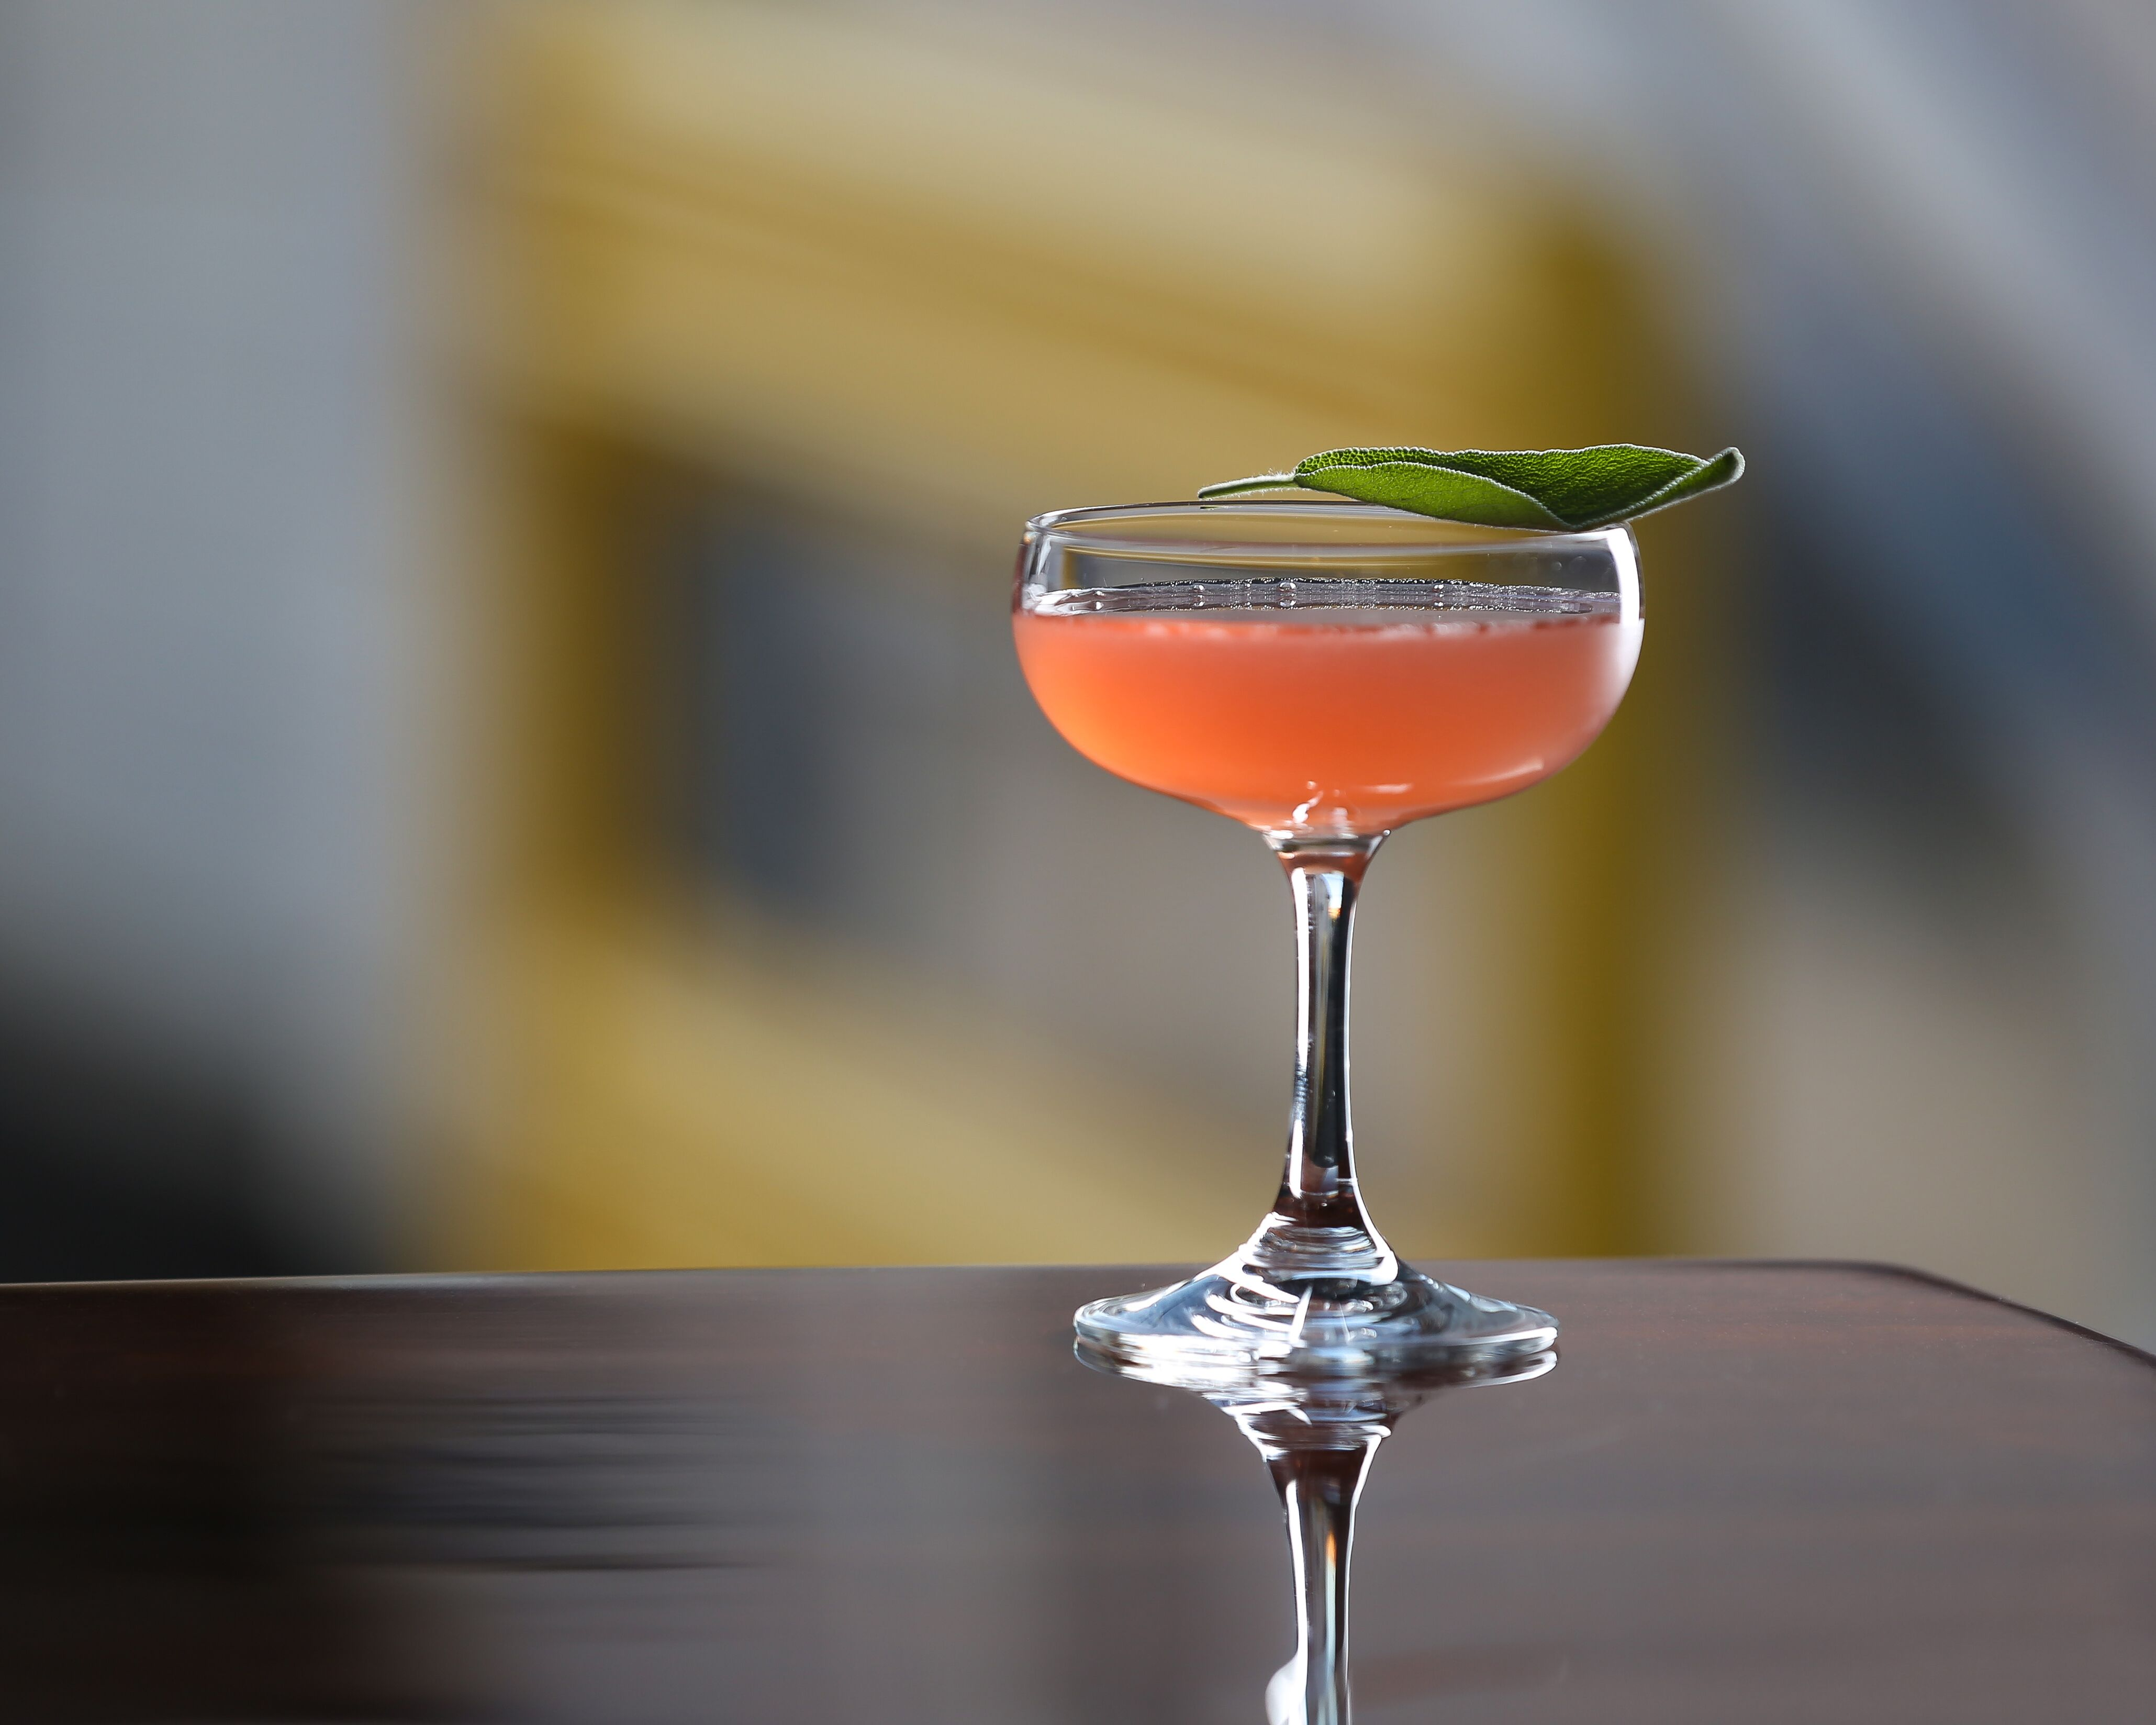 Valentine's Day date ideas from day-drinking to DIY cocktails